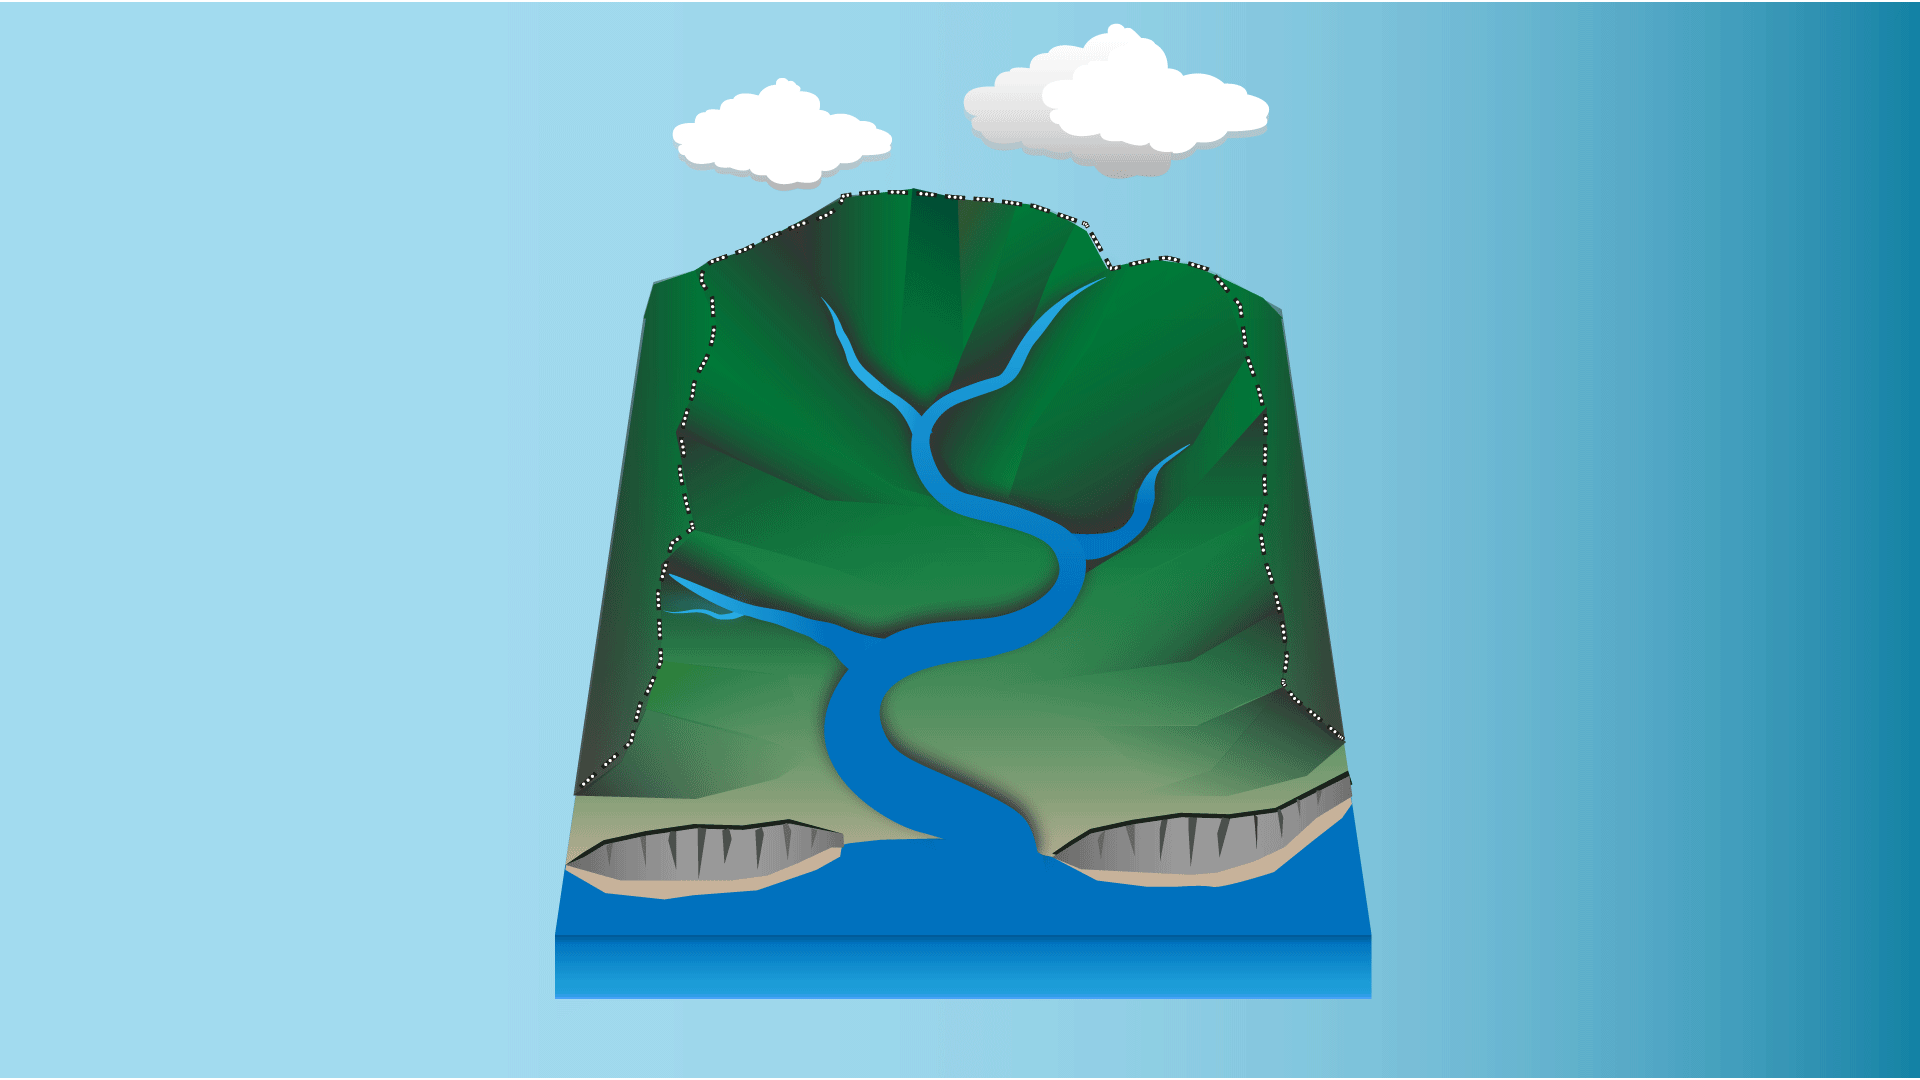 Stream clipart river mouth. Jc wise rivers hk